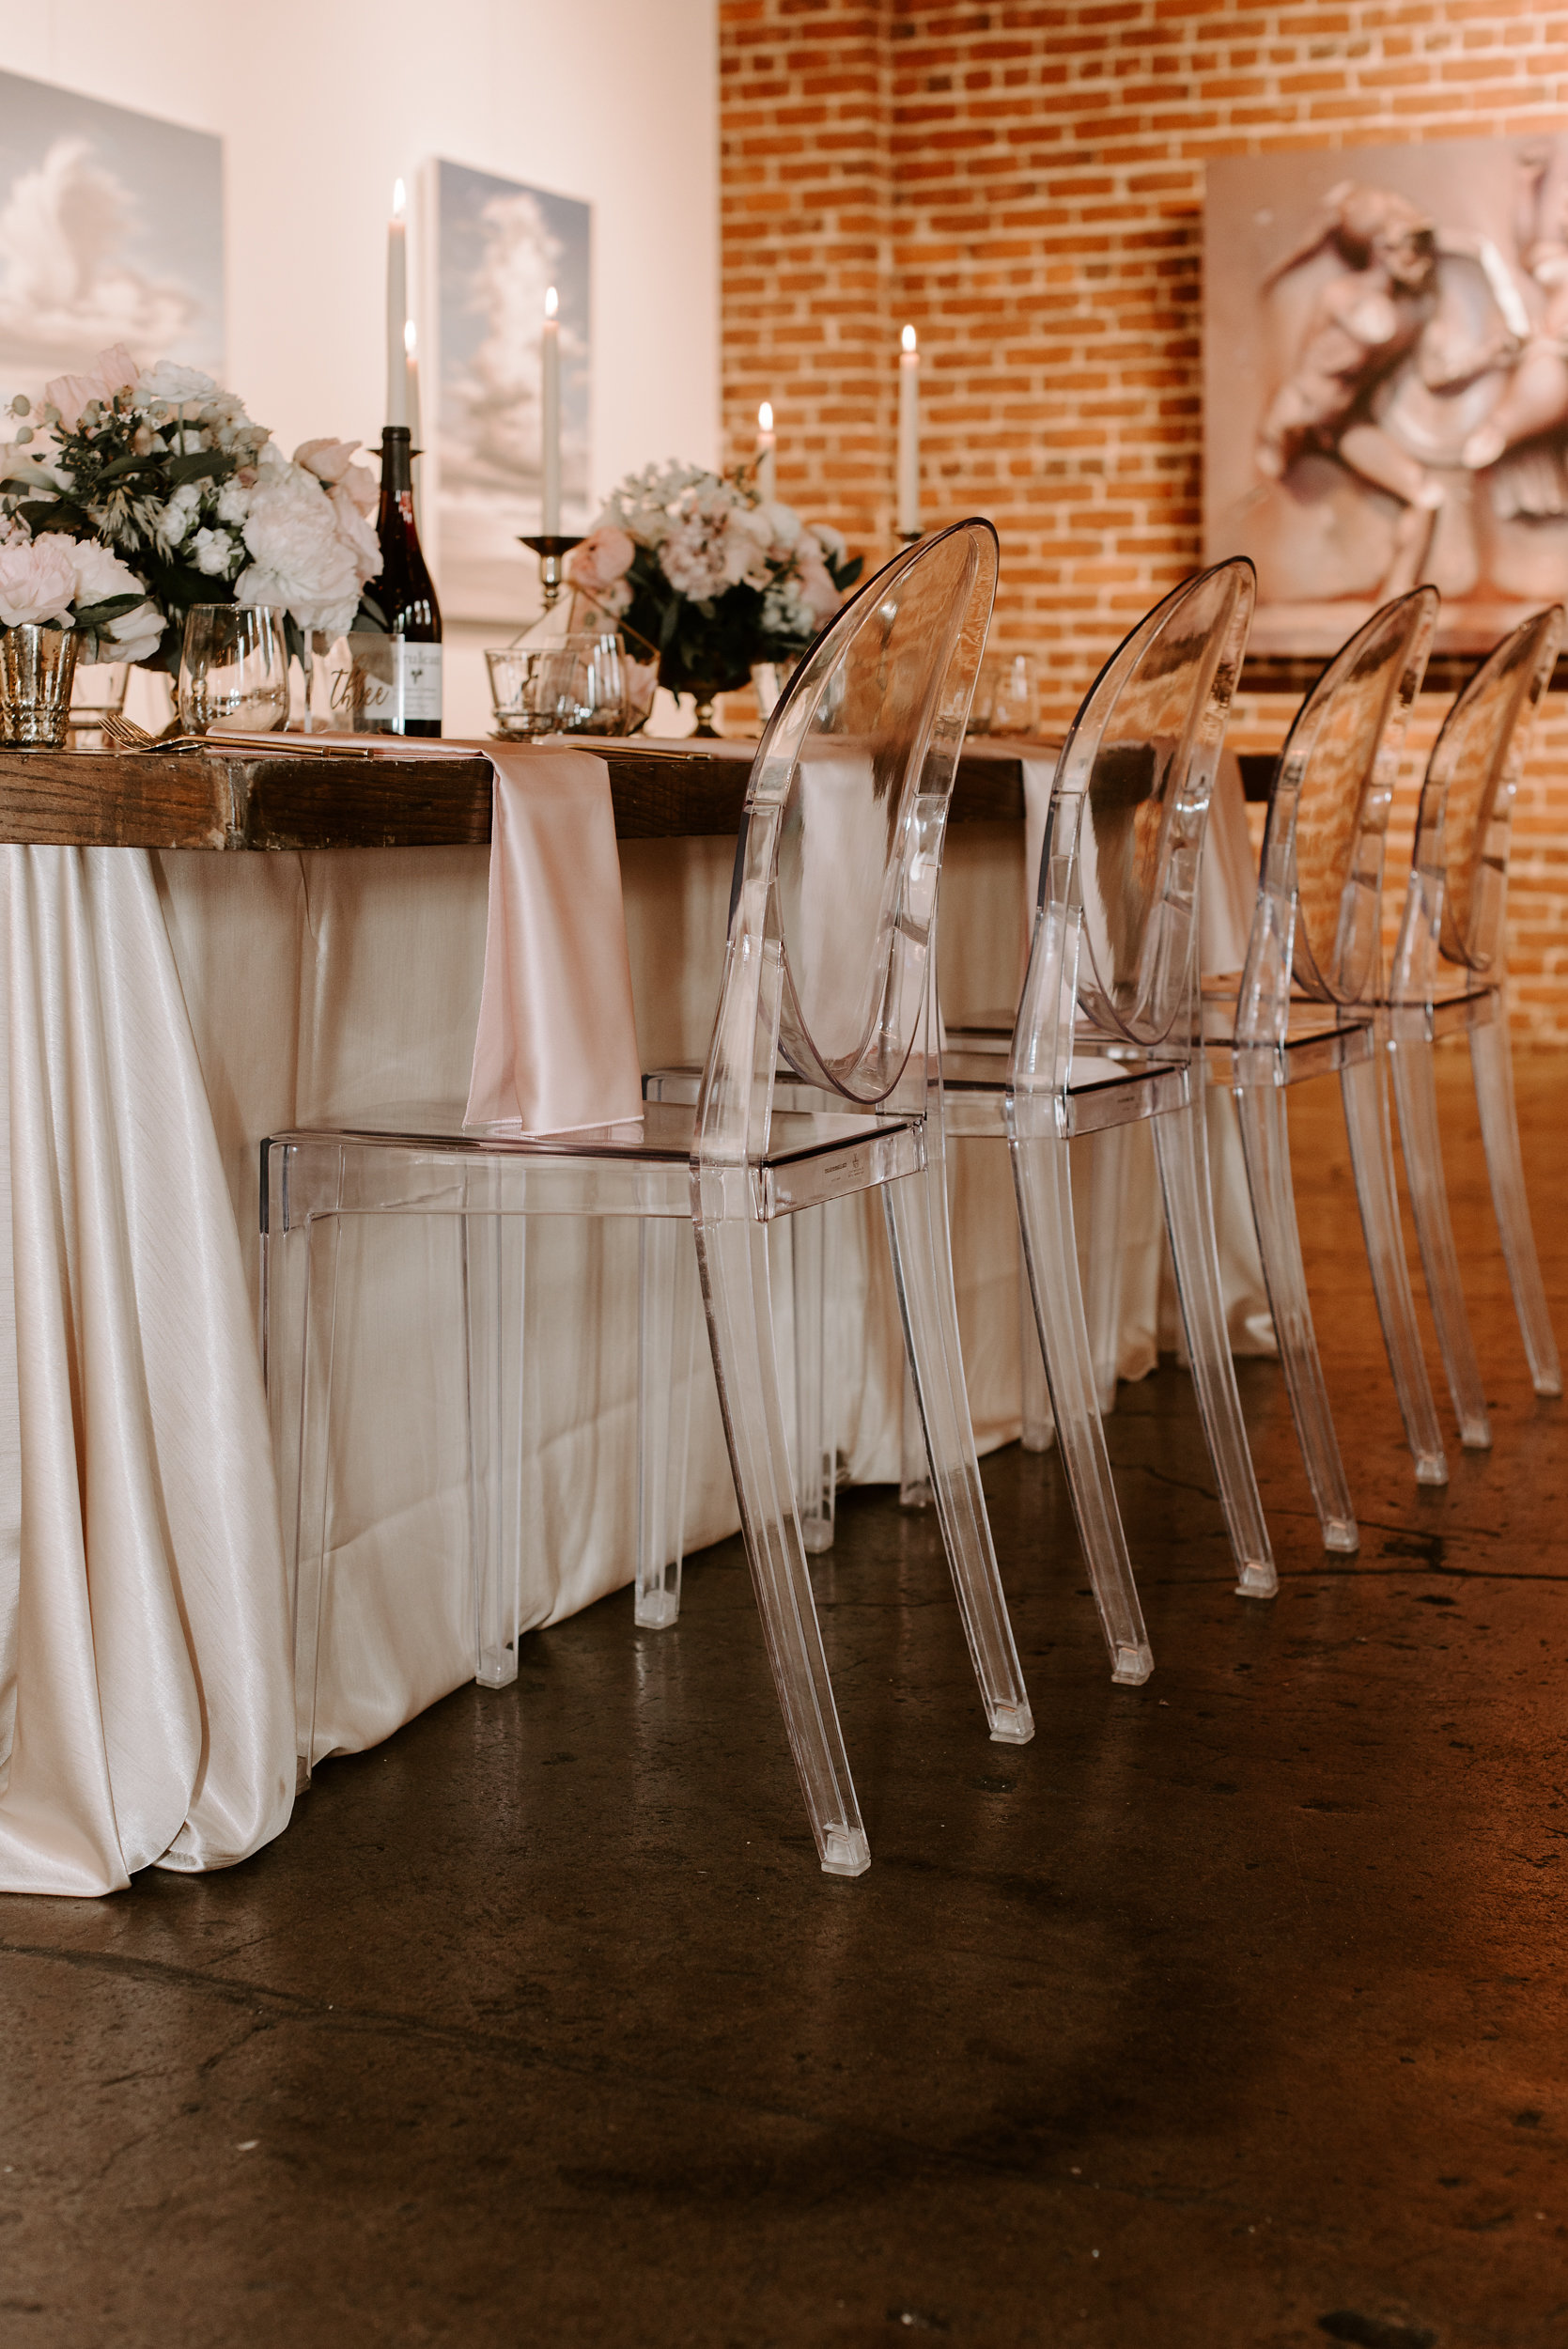 Copy of Copy of Wedding Tabletop Decor, Wedding Chairs